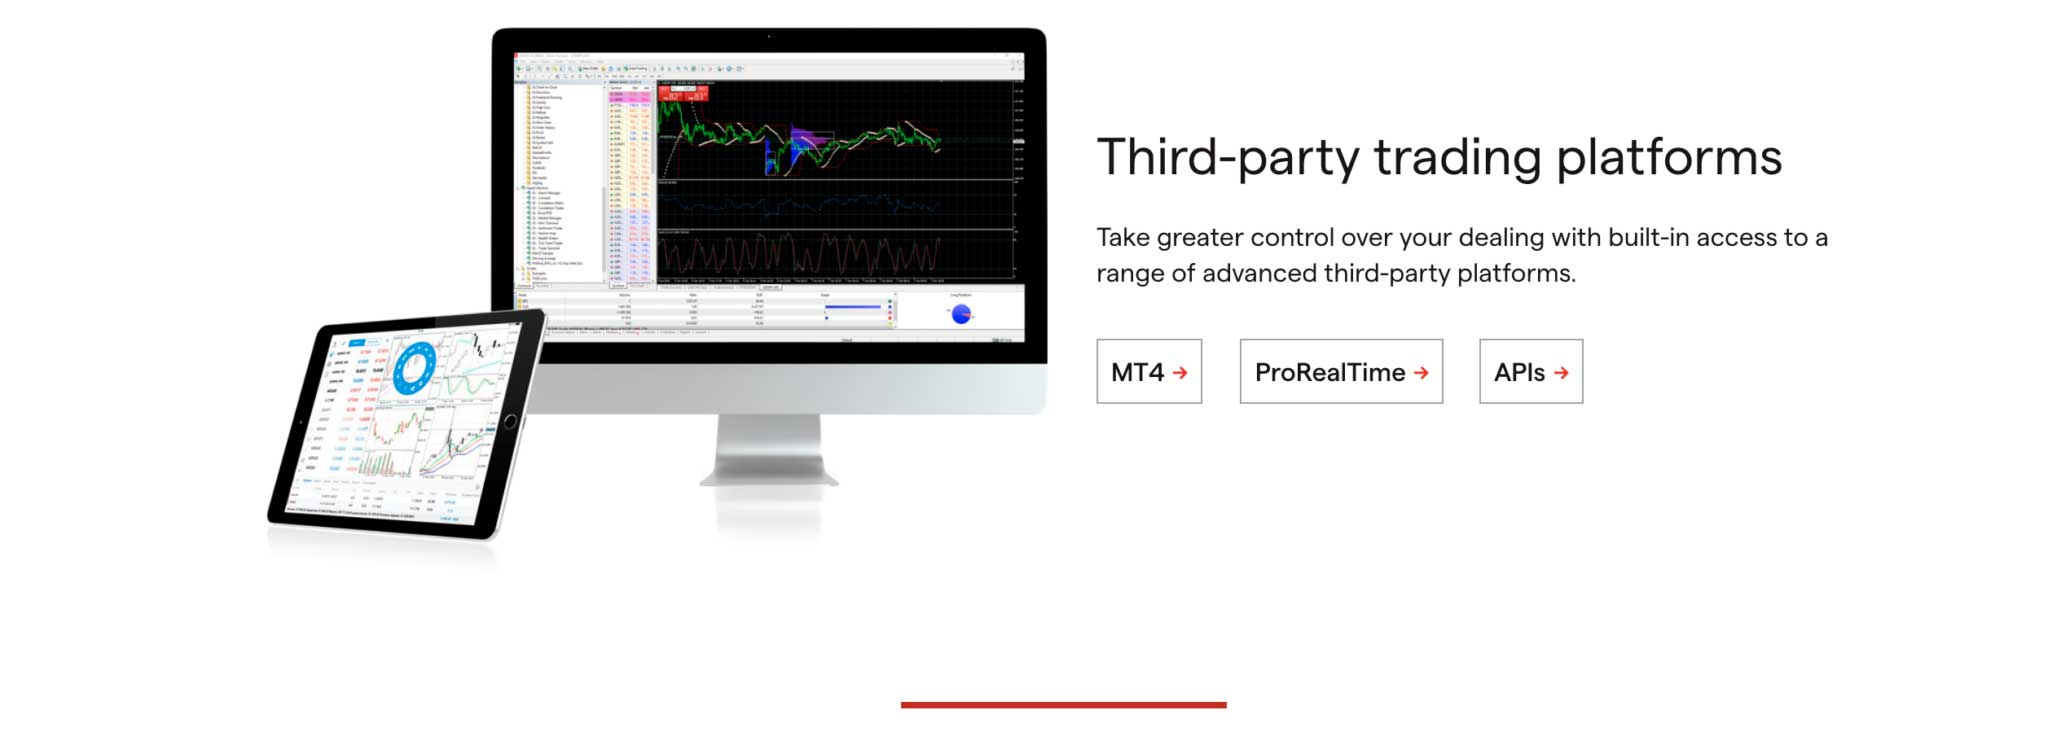 IG third-party trading platforms